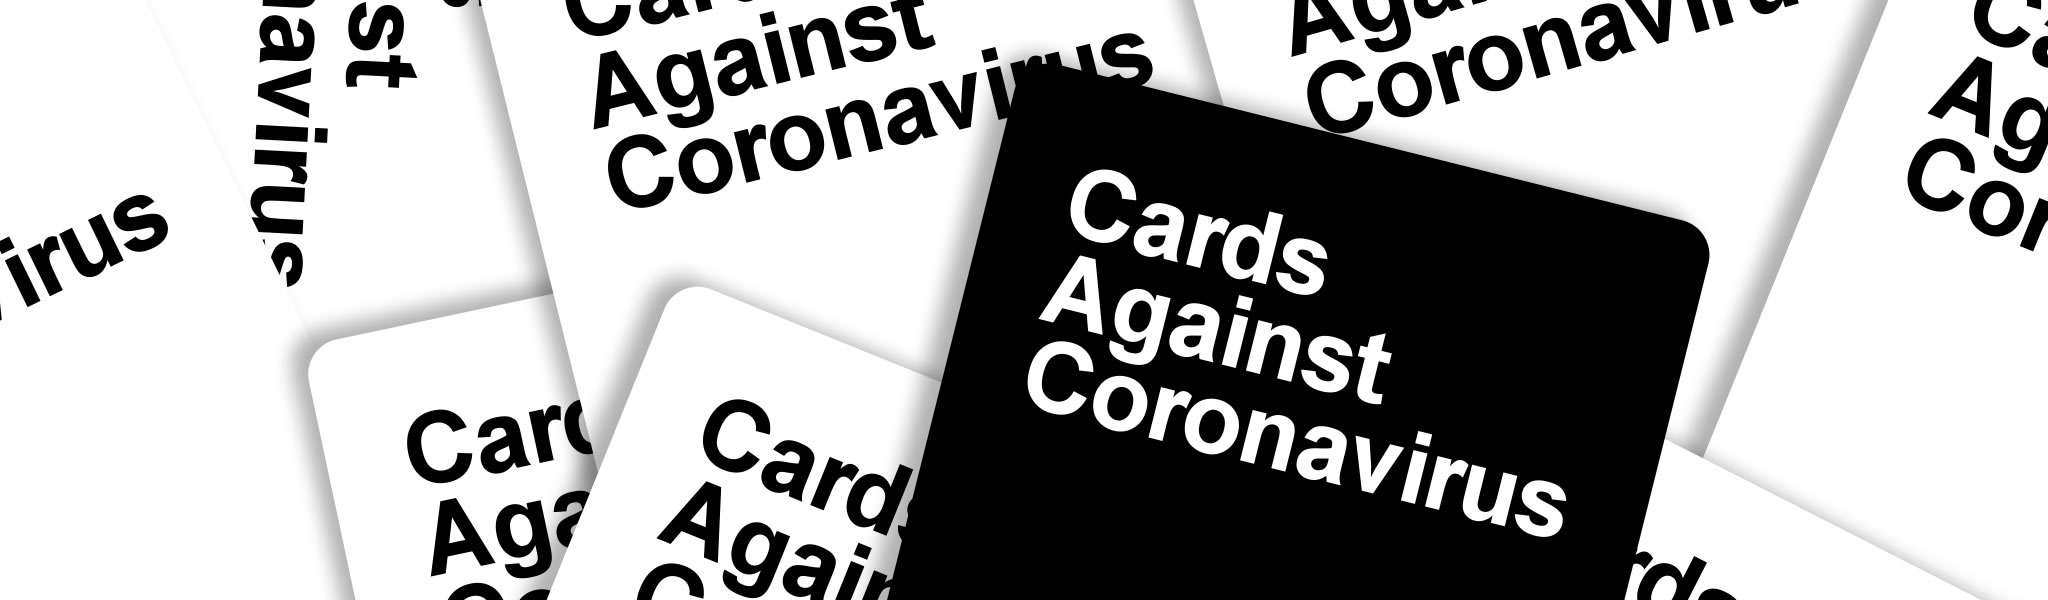 Cards Against Coronavirus